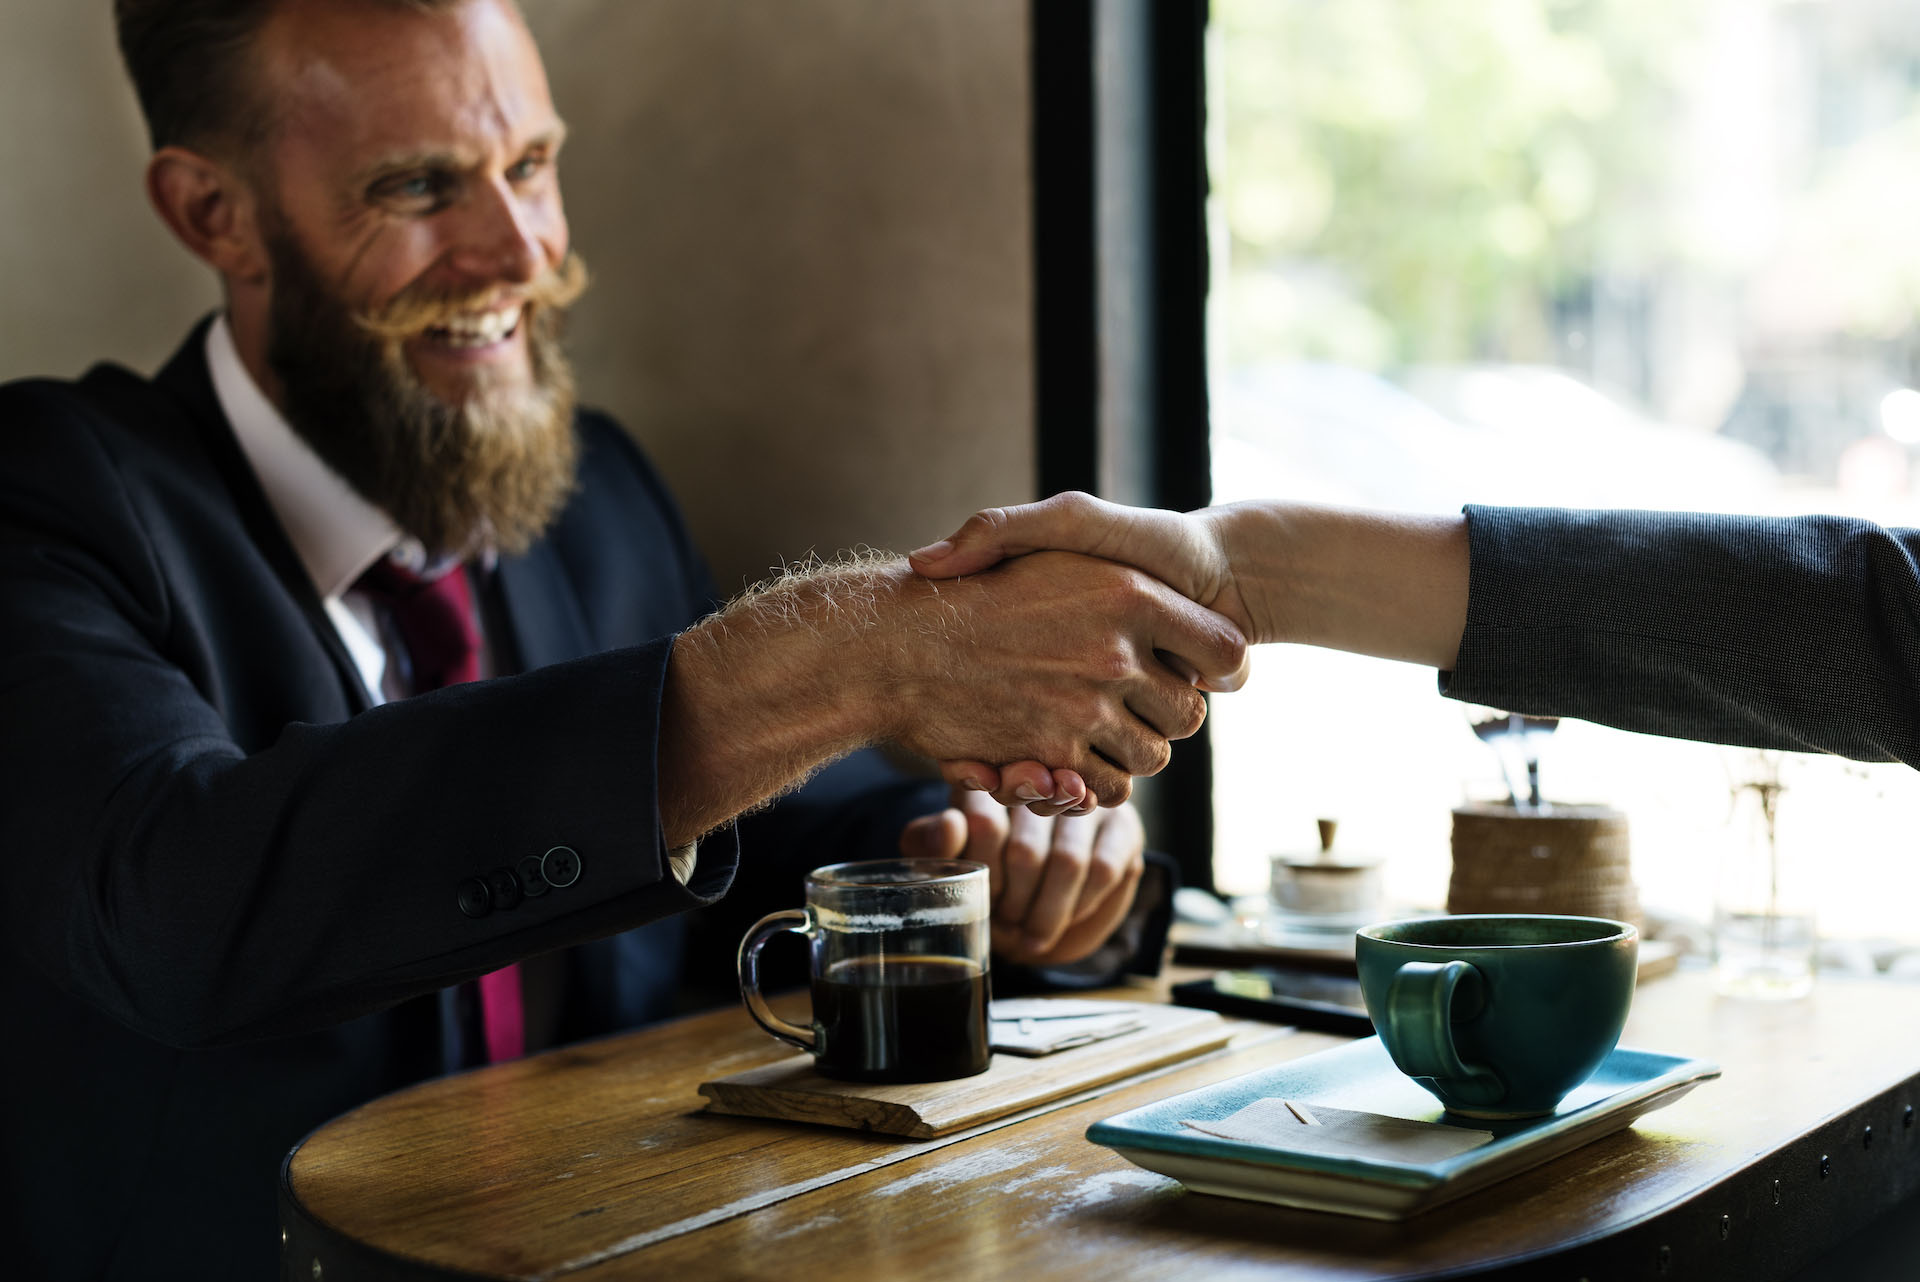 The Problems of Cross-Cultural Business Negotiation and How to Avoid Them